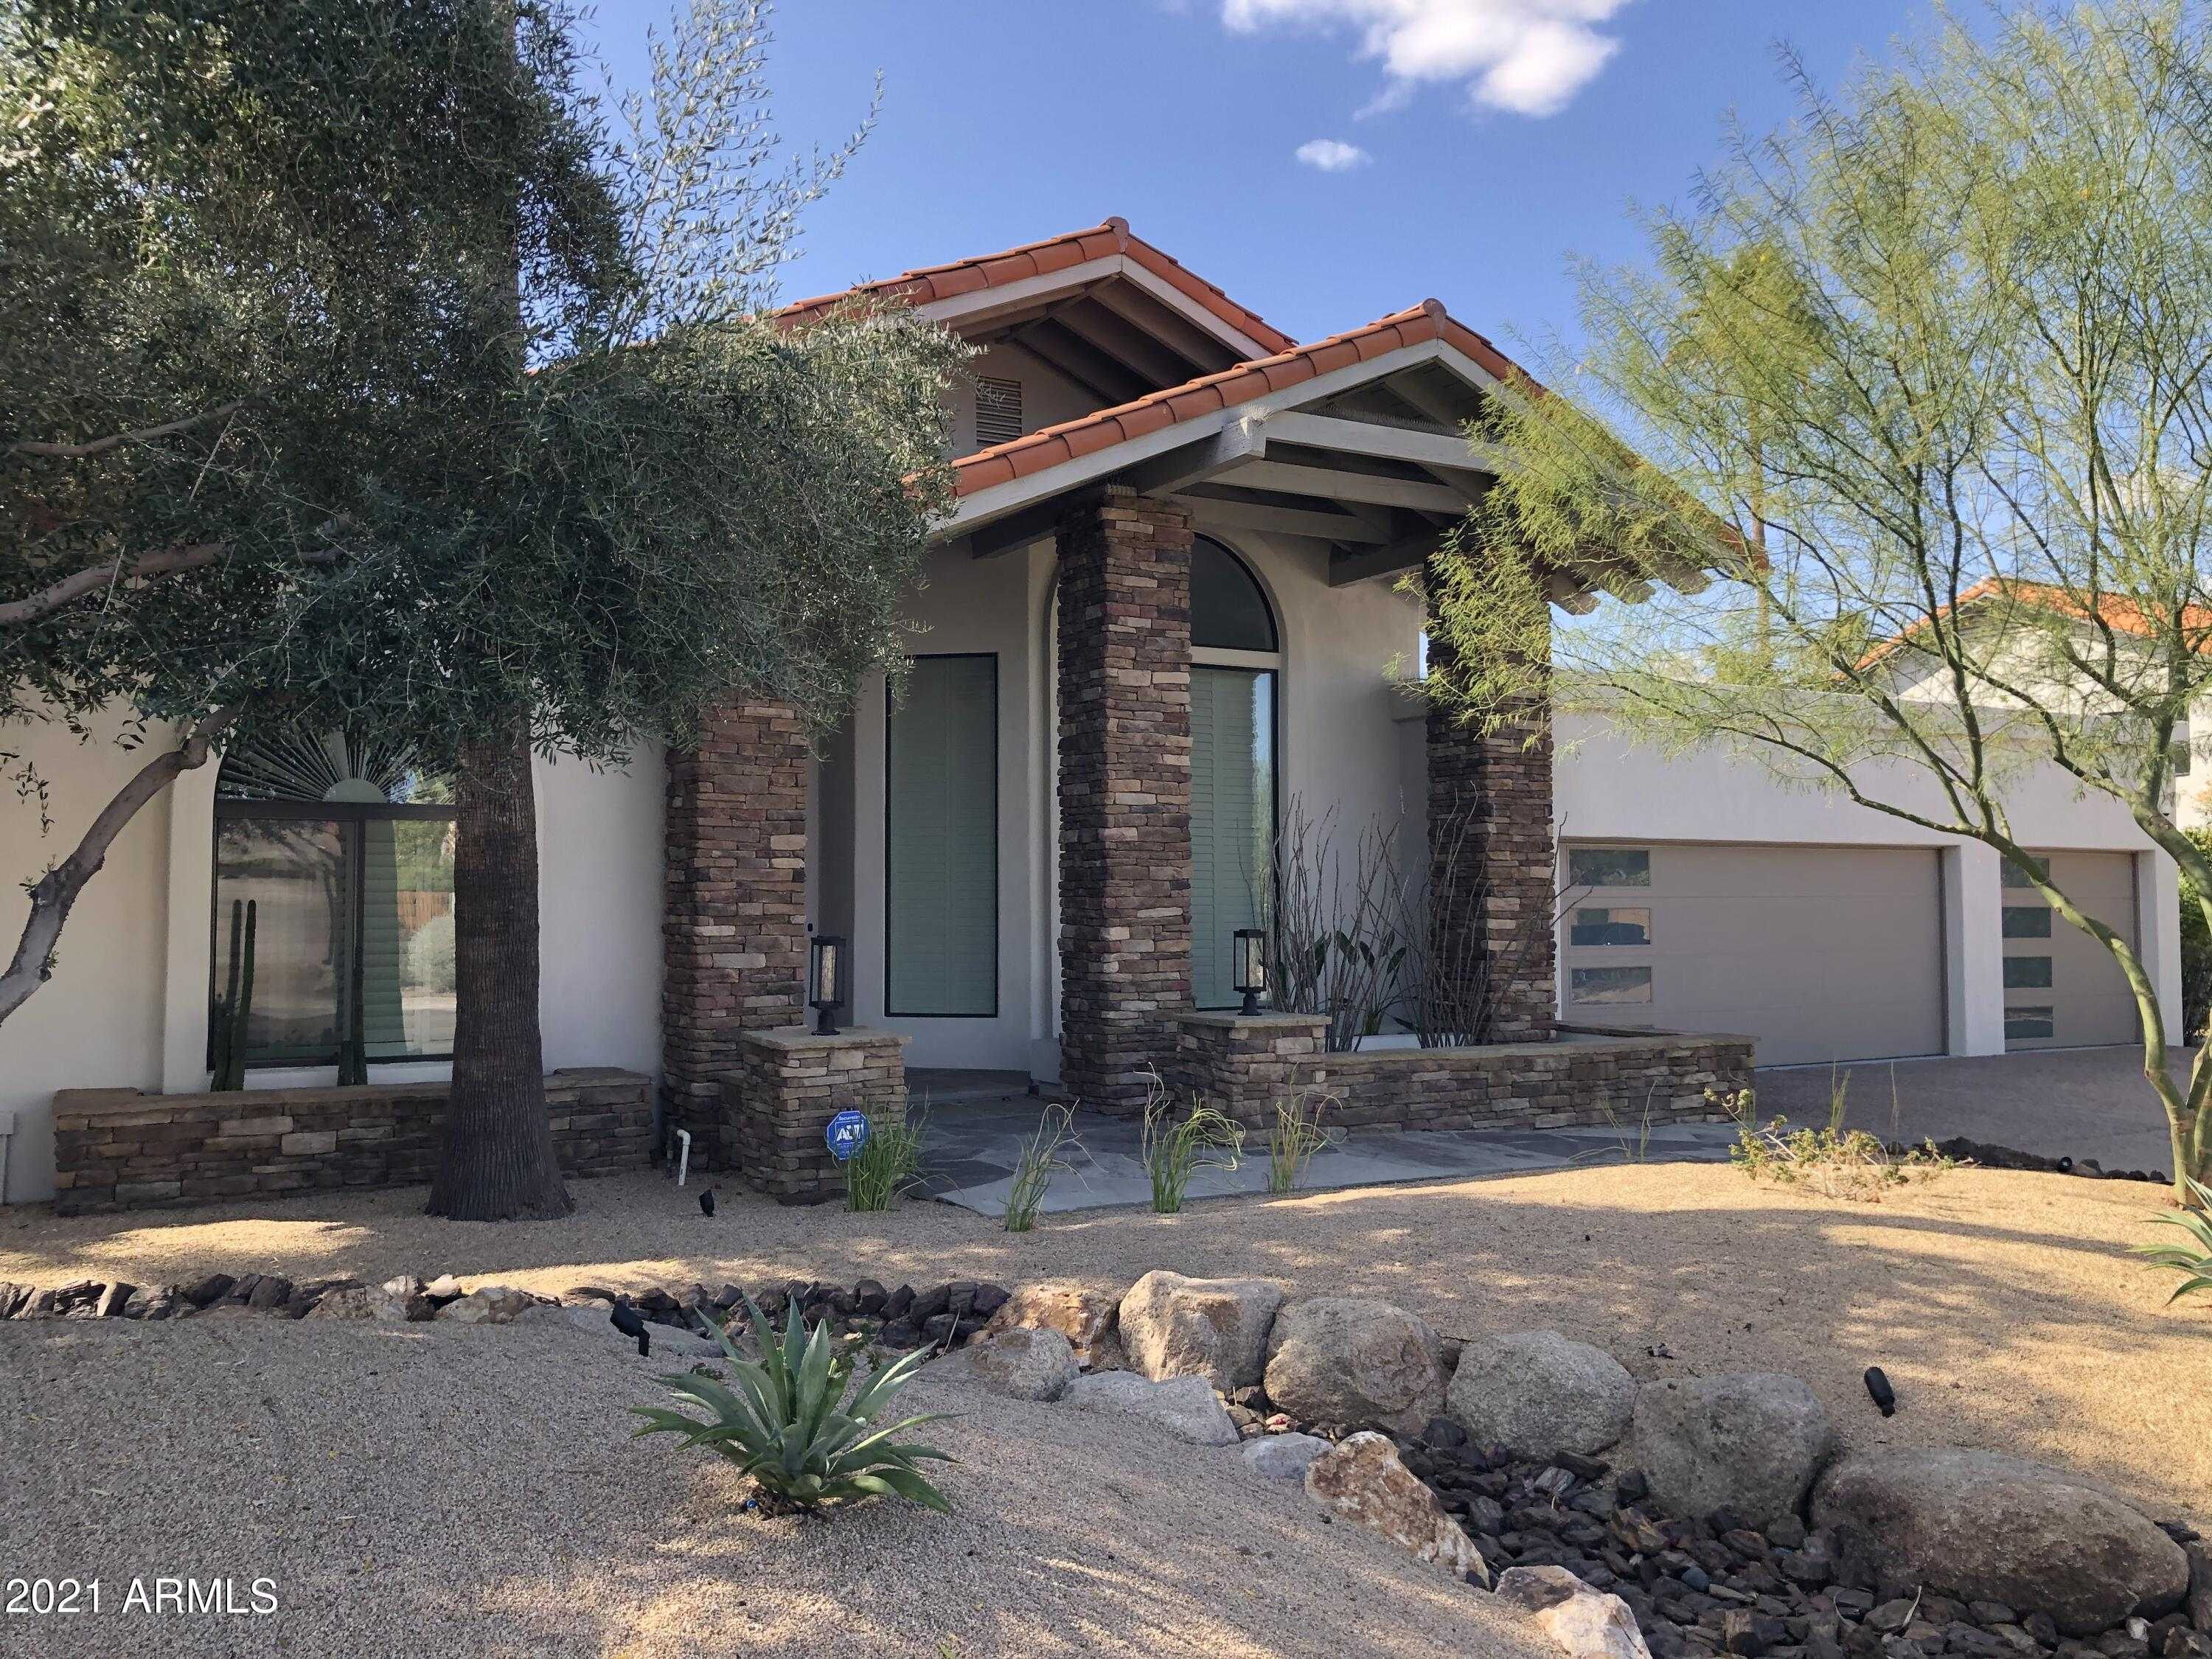 $1,495,000 - 4Br/3Ba - Home for Sale in Andalusia 2, Scottsdale